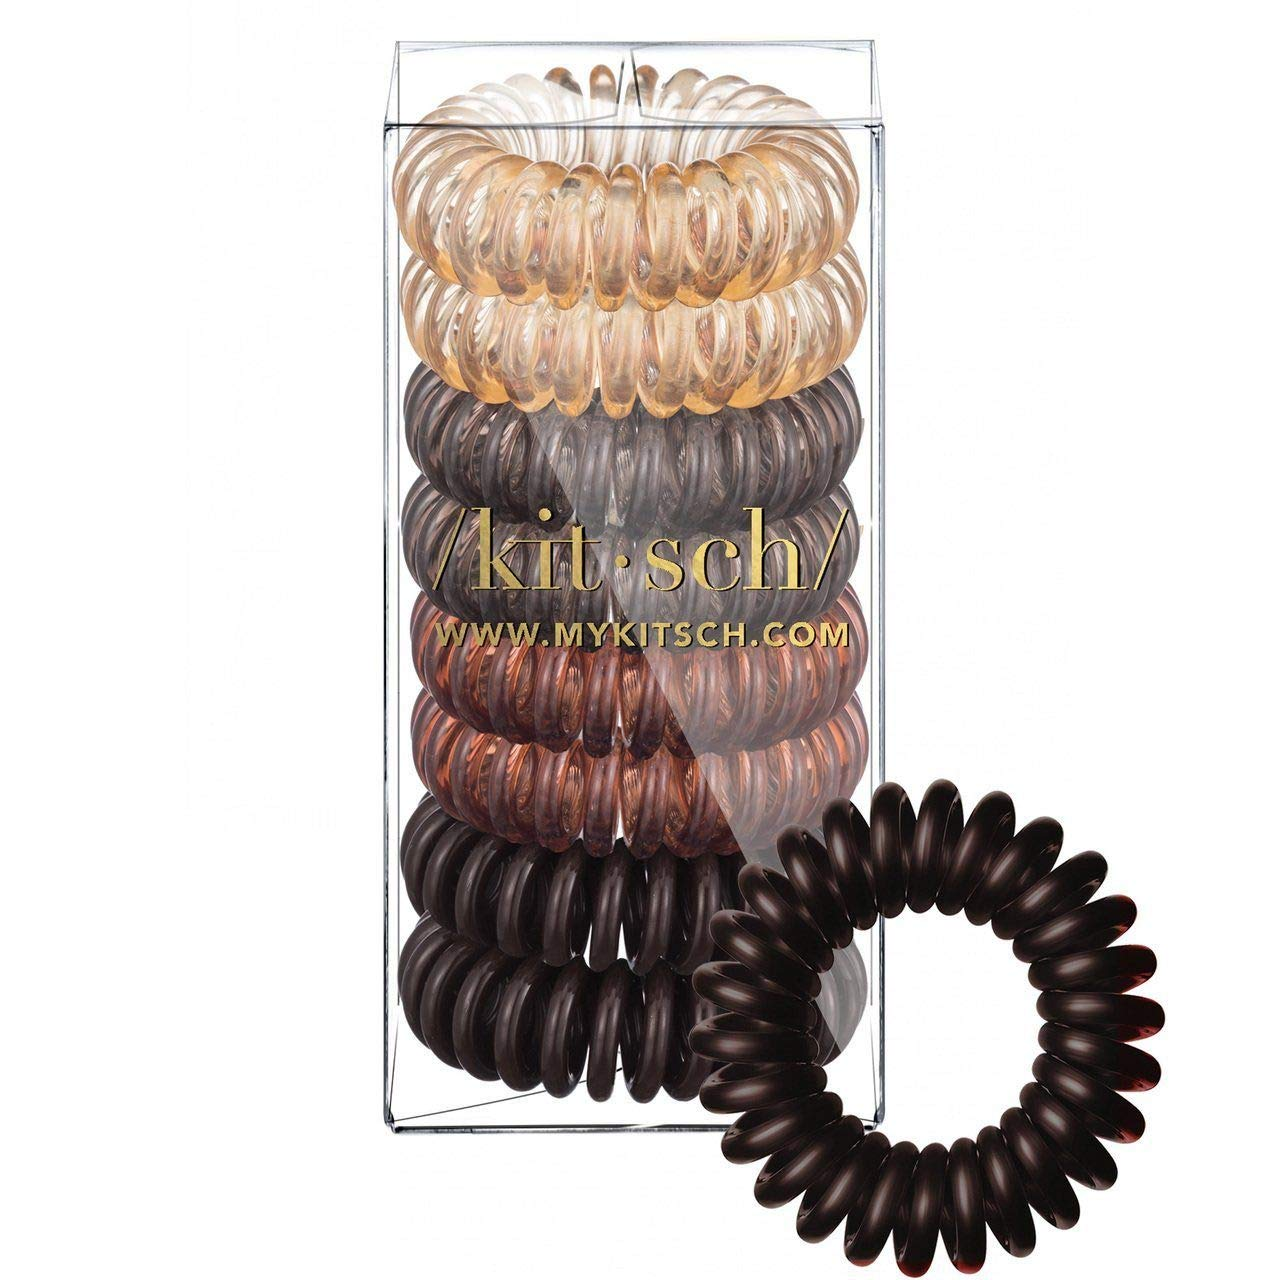 Kitsch Spiral Hair Ties, Coil Hair Ties, Phone Cord Hair Ties, Hair Coils – 8pcs, Brunette